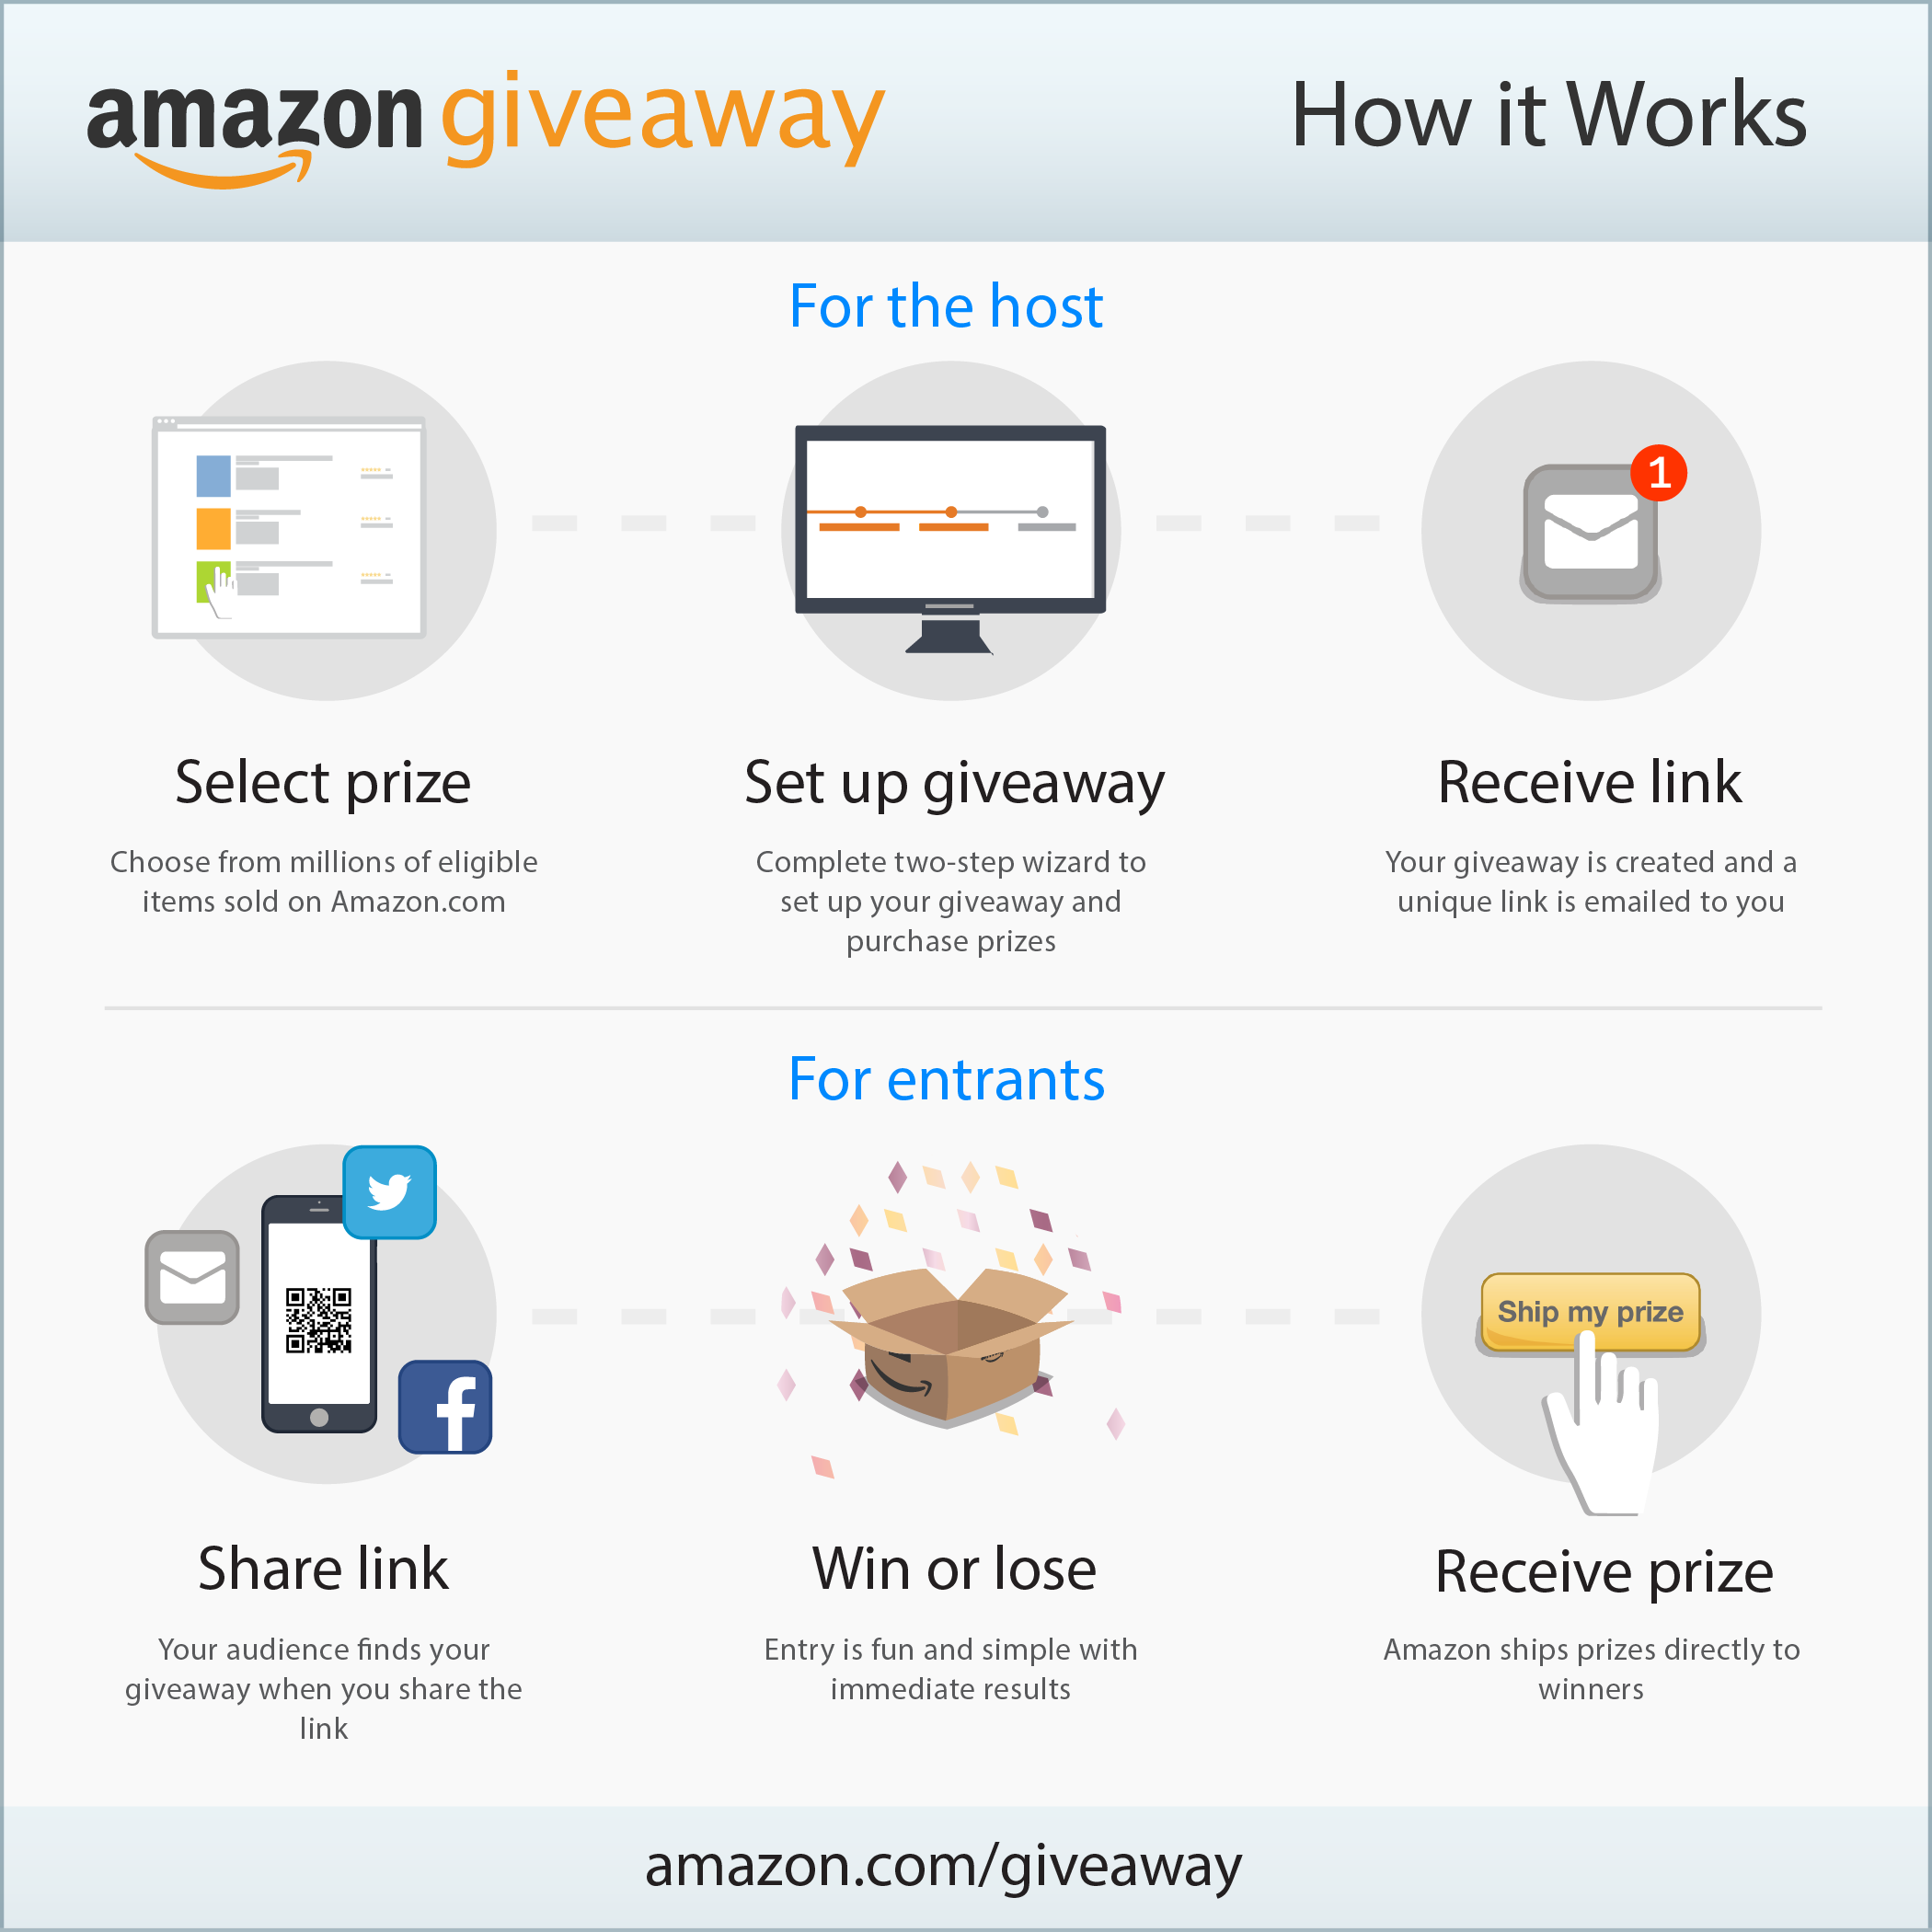 Introducing Amazon Giveaway, a new intuitive self-service tool designed to modernize the time-tested radio giveaway...